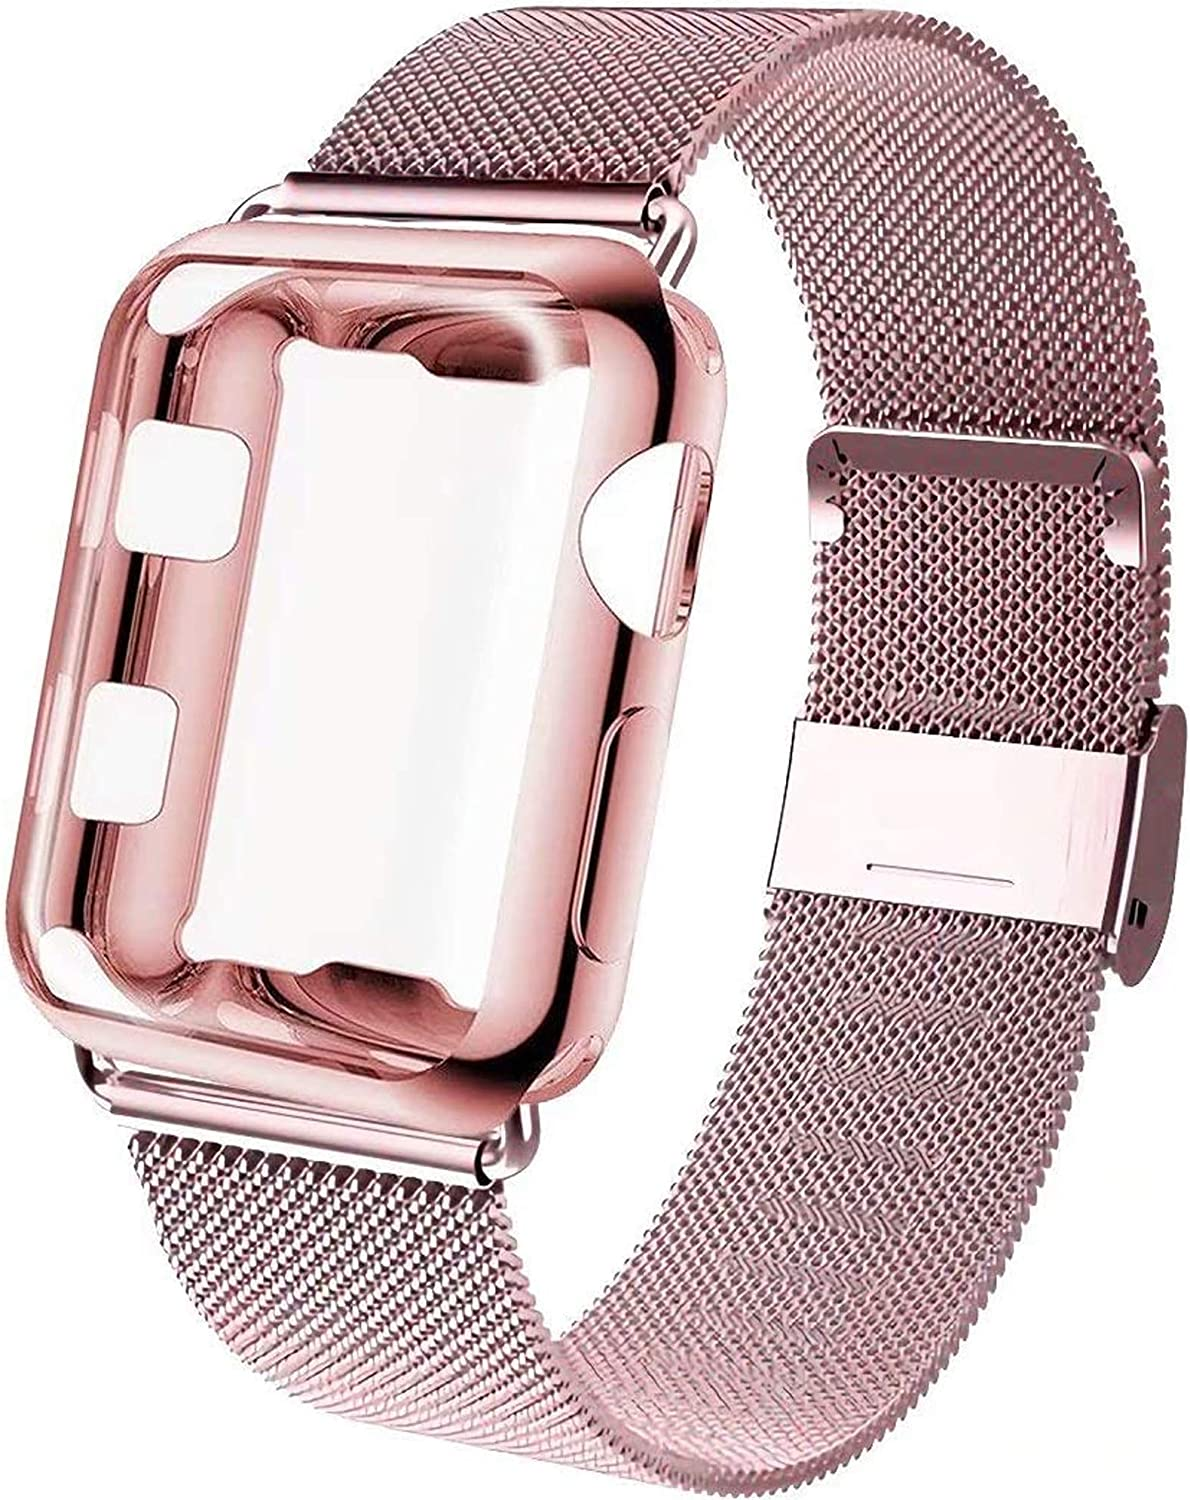 GBPOOT Compatible for Apple Watch Band 38mm 40mm 42mm 44mm with Screen Protector Case, Sports Wristband Strap Replacement Band with Protective Case for Iwatch Series 6/SE/5/4/3/2/1,38mm,Rose Gold